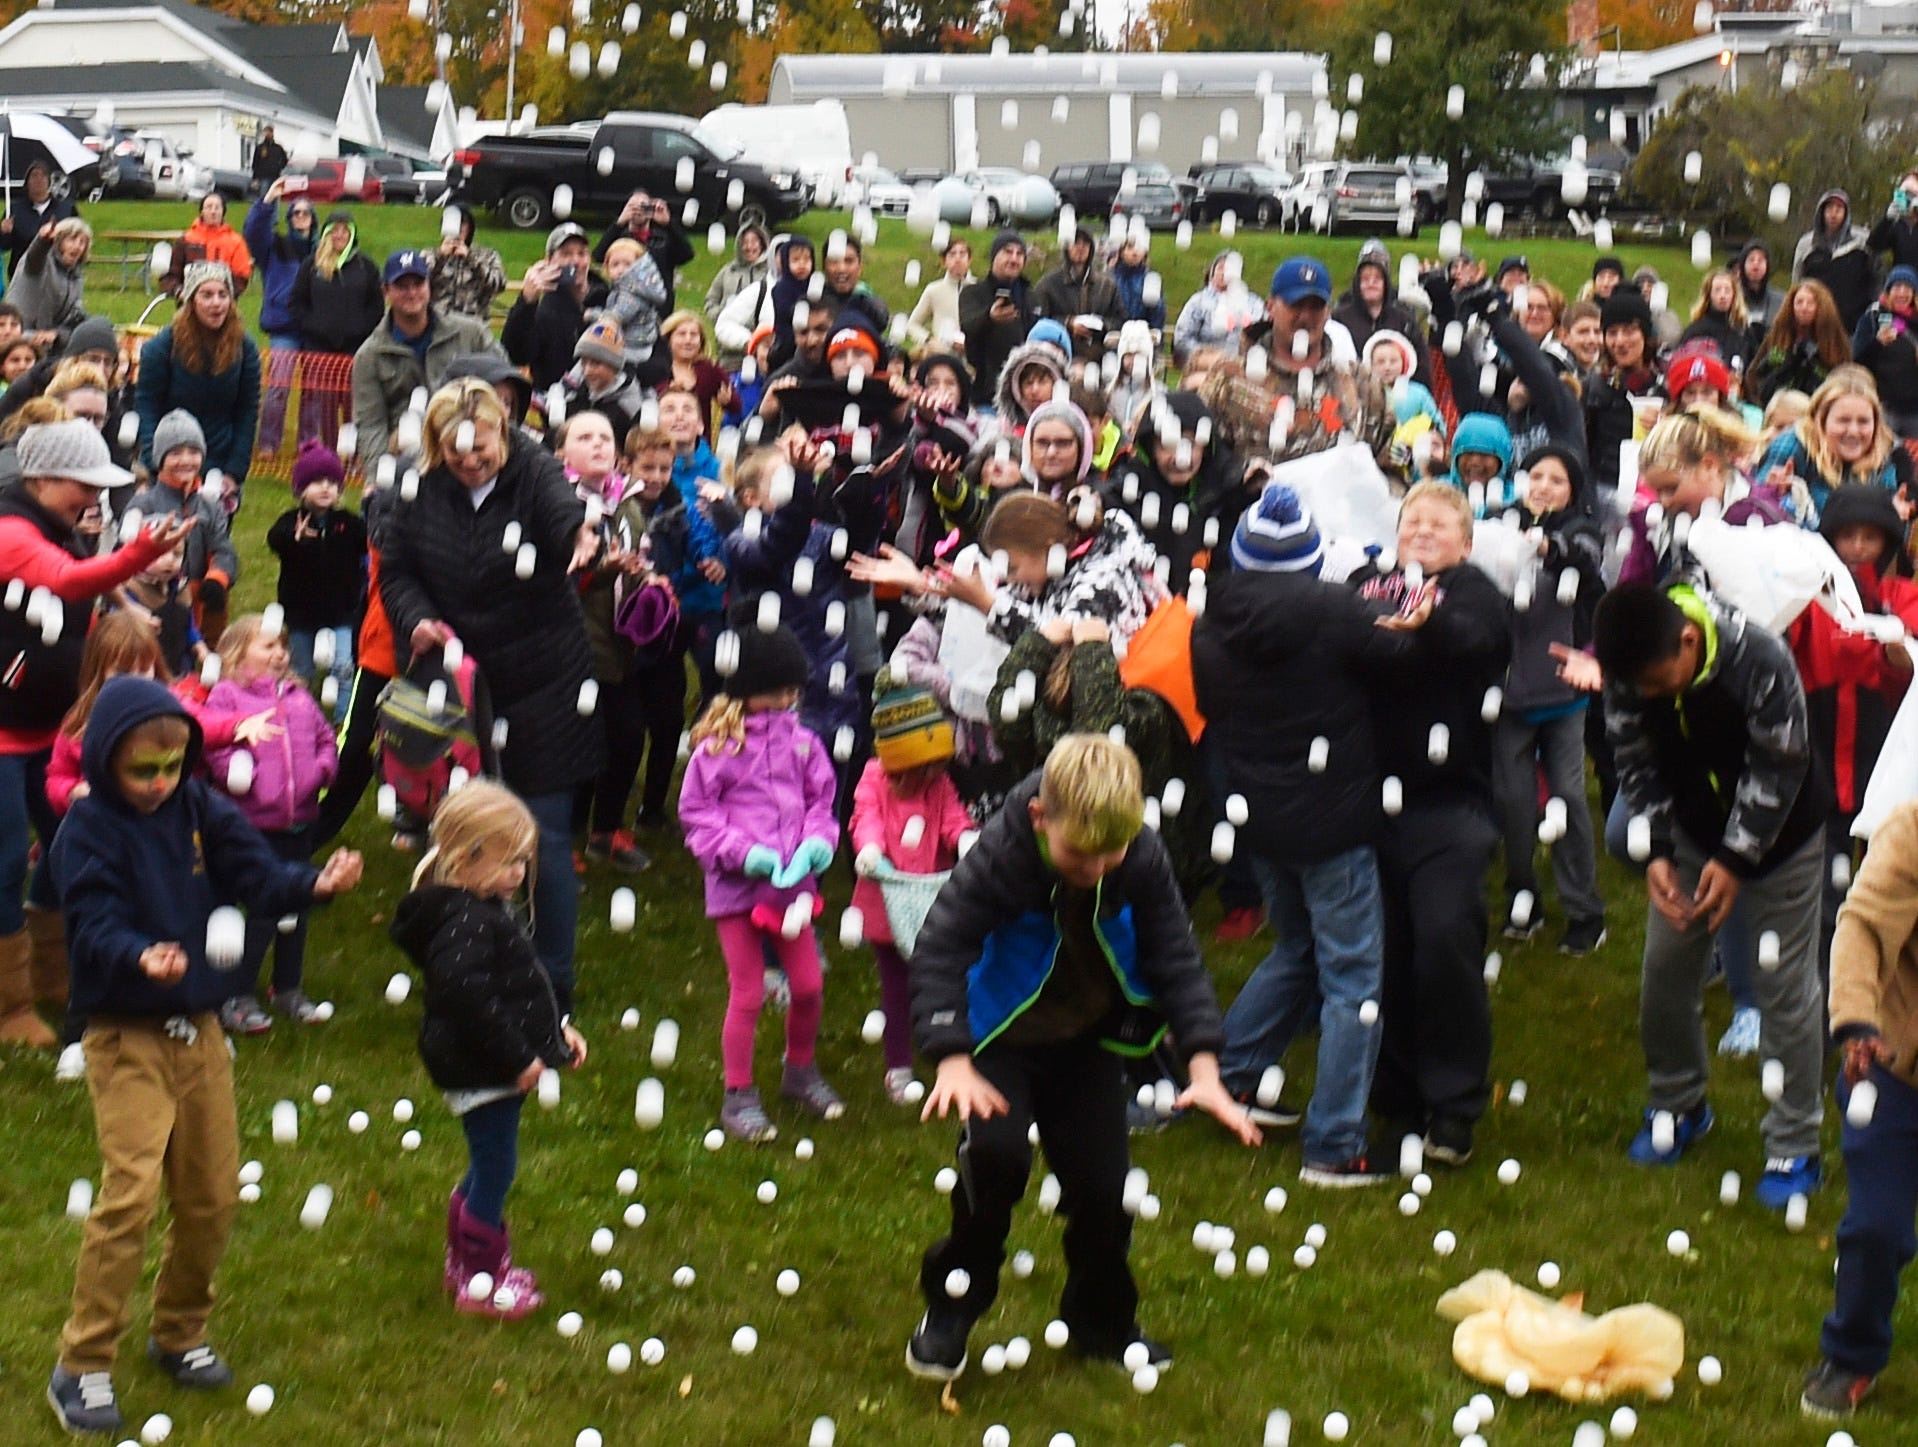 Not only did it sprinkle nearly all day Sunday in Sister Bay, it was raining pingpong balls at the 73rd annual Sister Bay Fall Fest on Sunday, Oct. 14, 2018.  Pingpong ball were shot from an air cannon in a downtown green space provided for the children's area. It was followed by an adult drop on closed-off State 42 from four air cannons in downtown Sister Bay. Nearly 6,000 pingpong balls were shot off with some carrying free prizes from area businesses written on the outside of the ball. Tina M. Gohr/USA TODAY NETWORK-Wisconsin